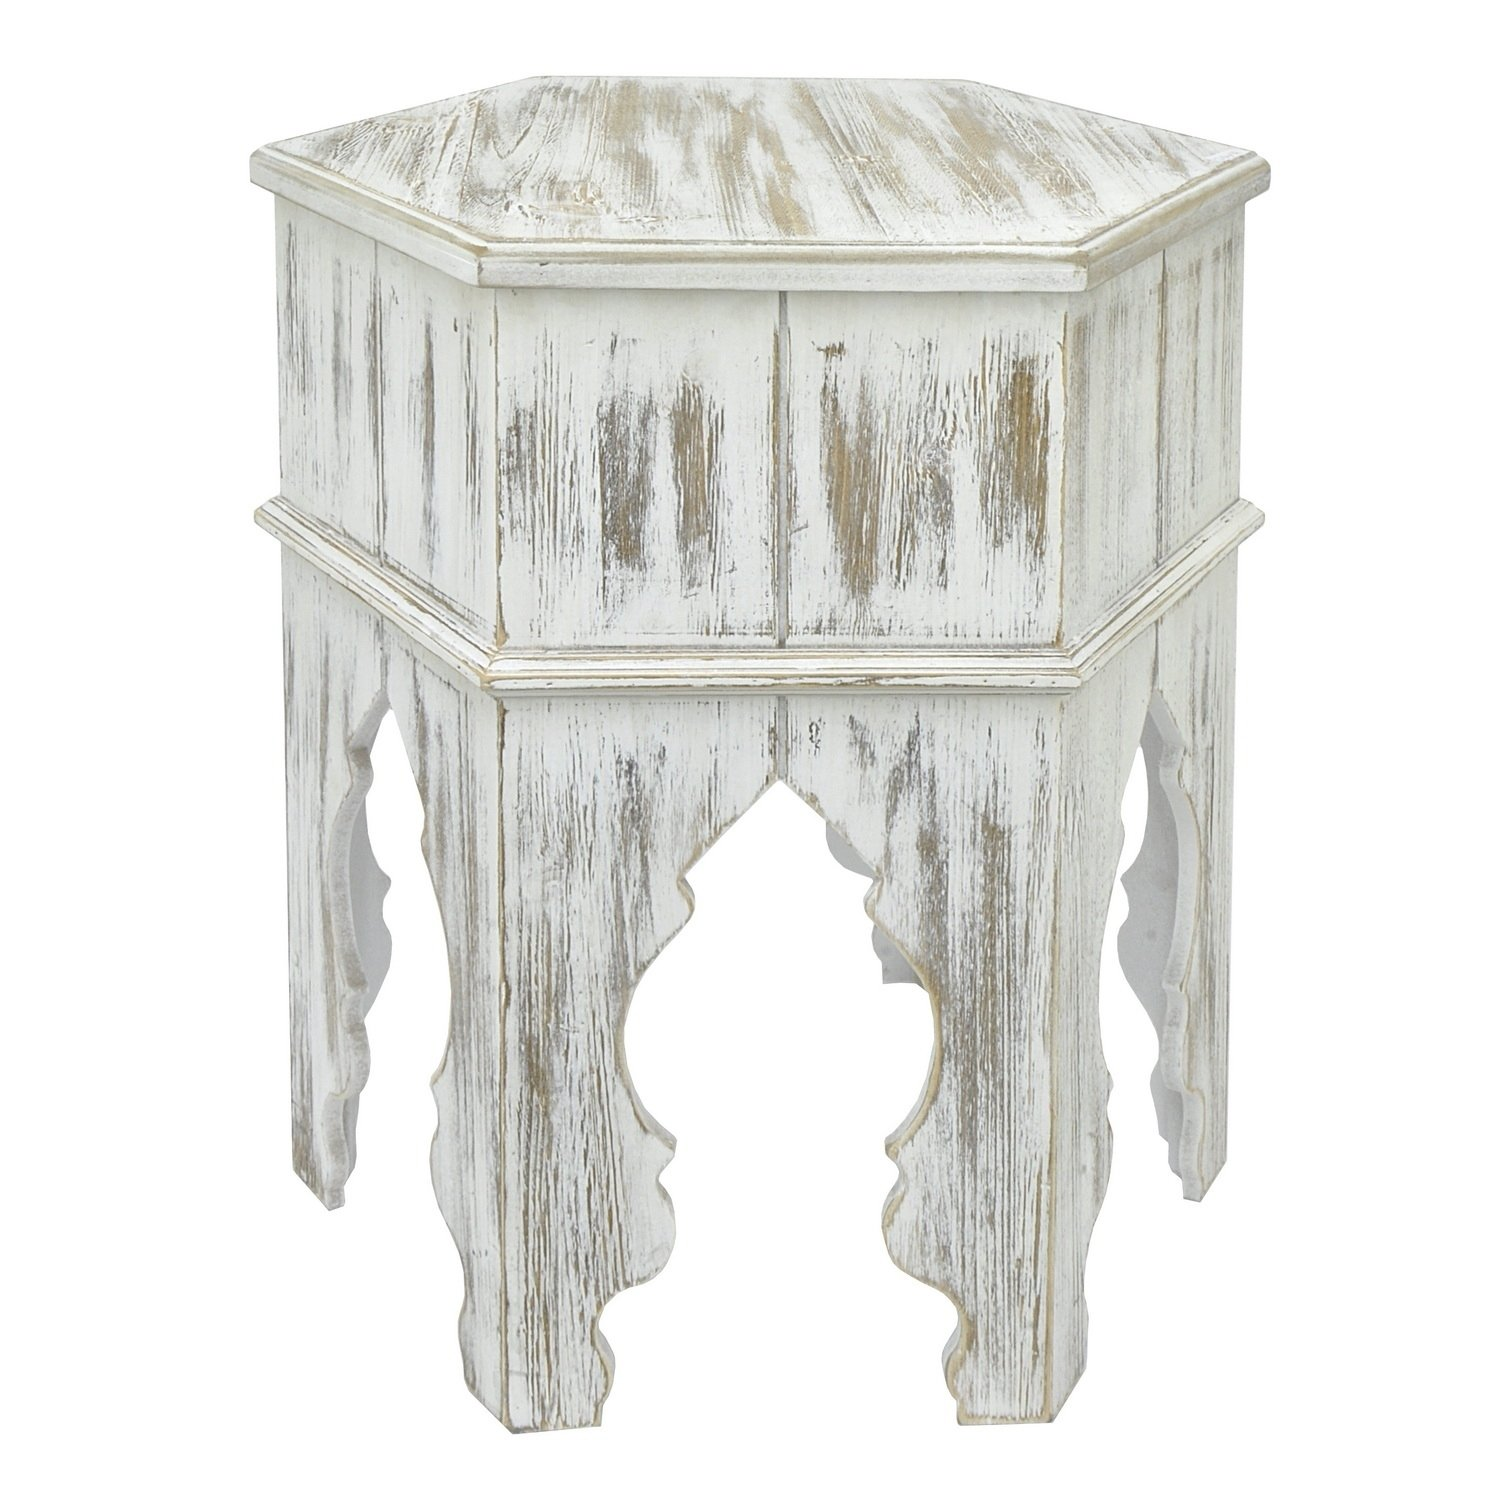 three hands wood moroccan inspired accent table distressed white finish free shipping today ethan allen headboard industrial style coffee tables dining room edmonton round marble